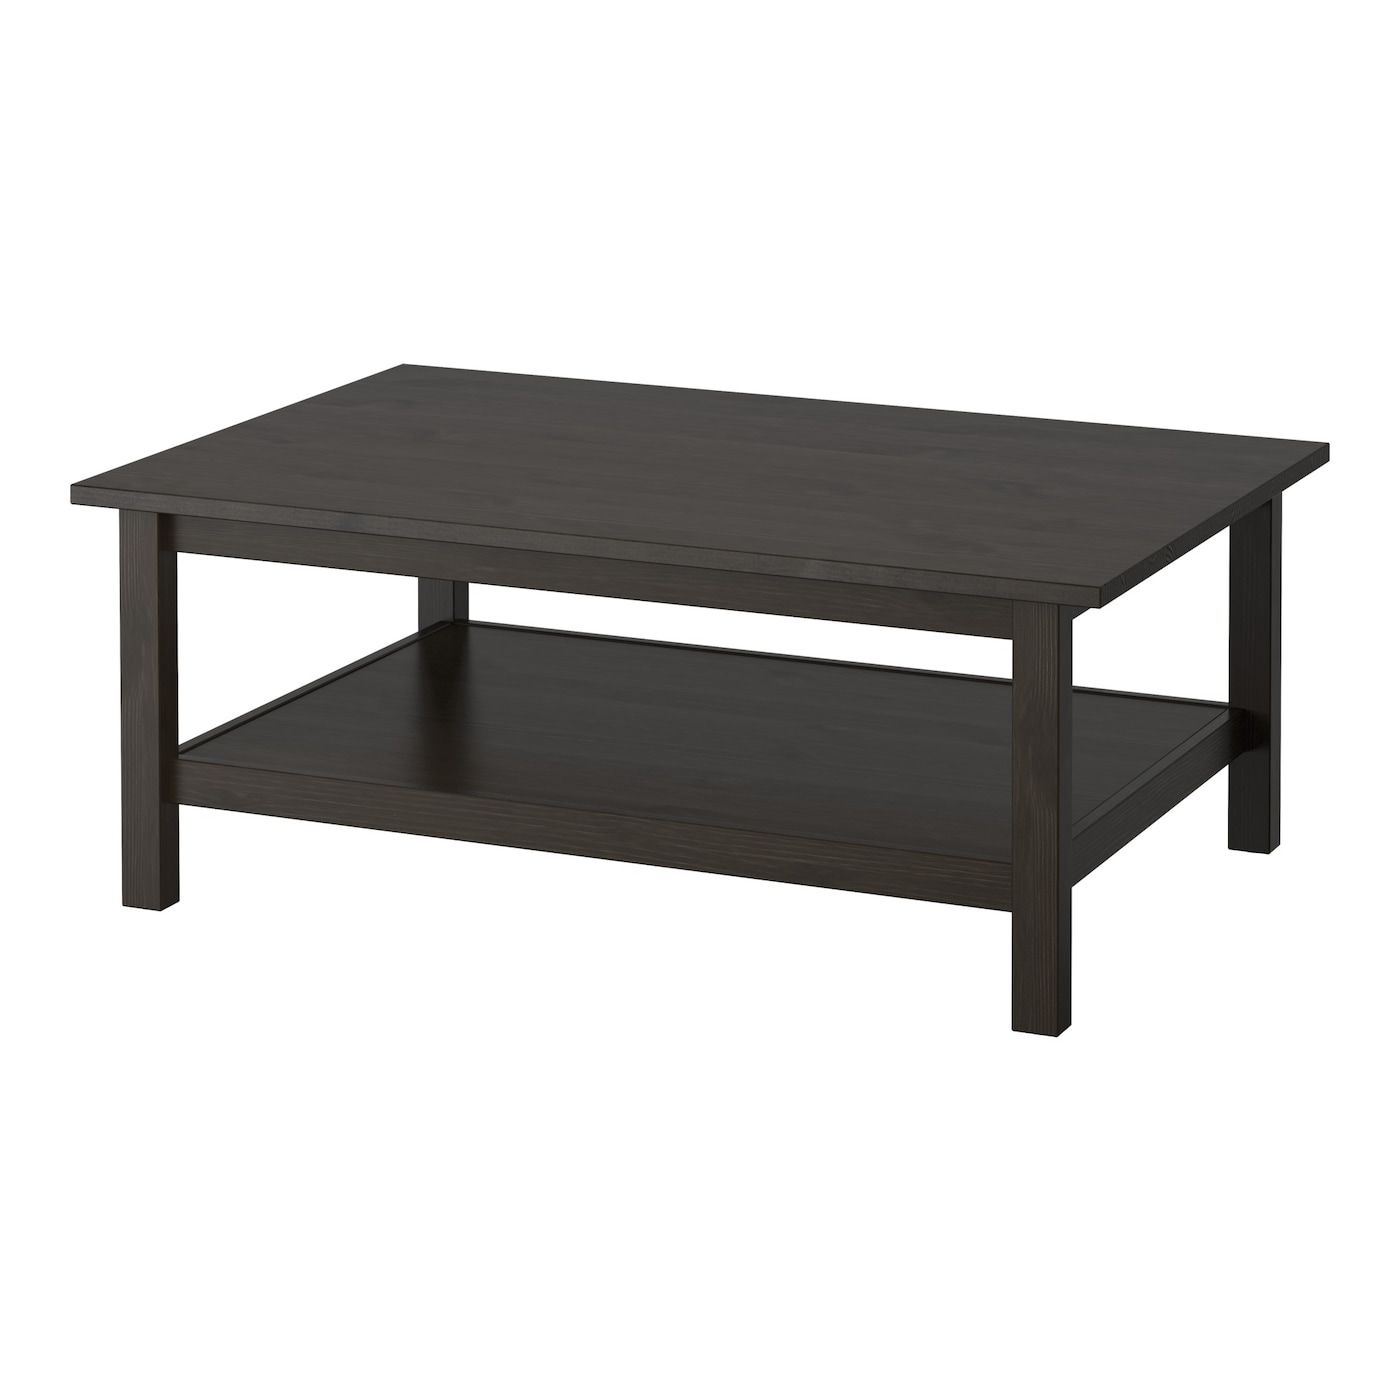 Charmant IKEA HEMNES Coffee Table Solid Wood Has A Natural Feel.